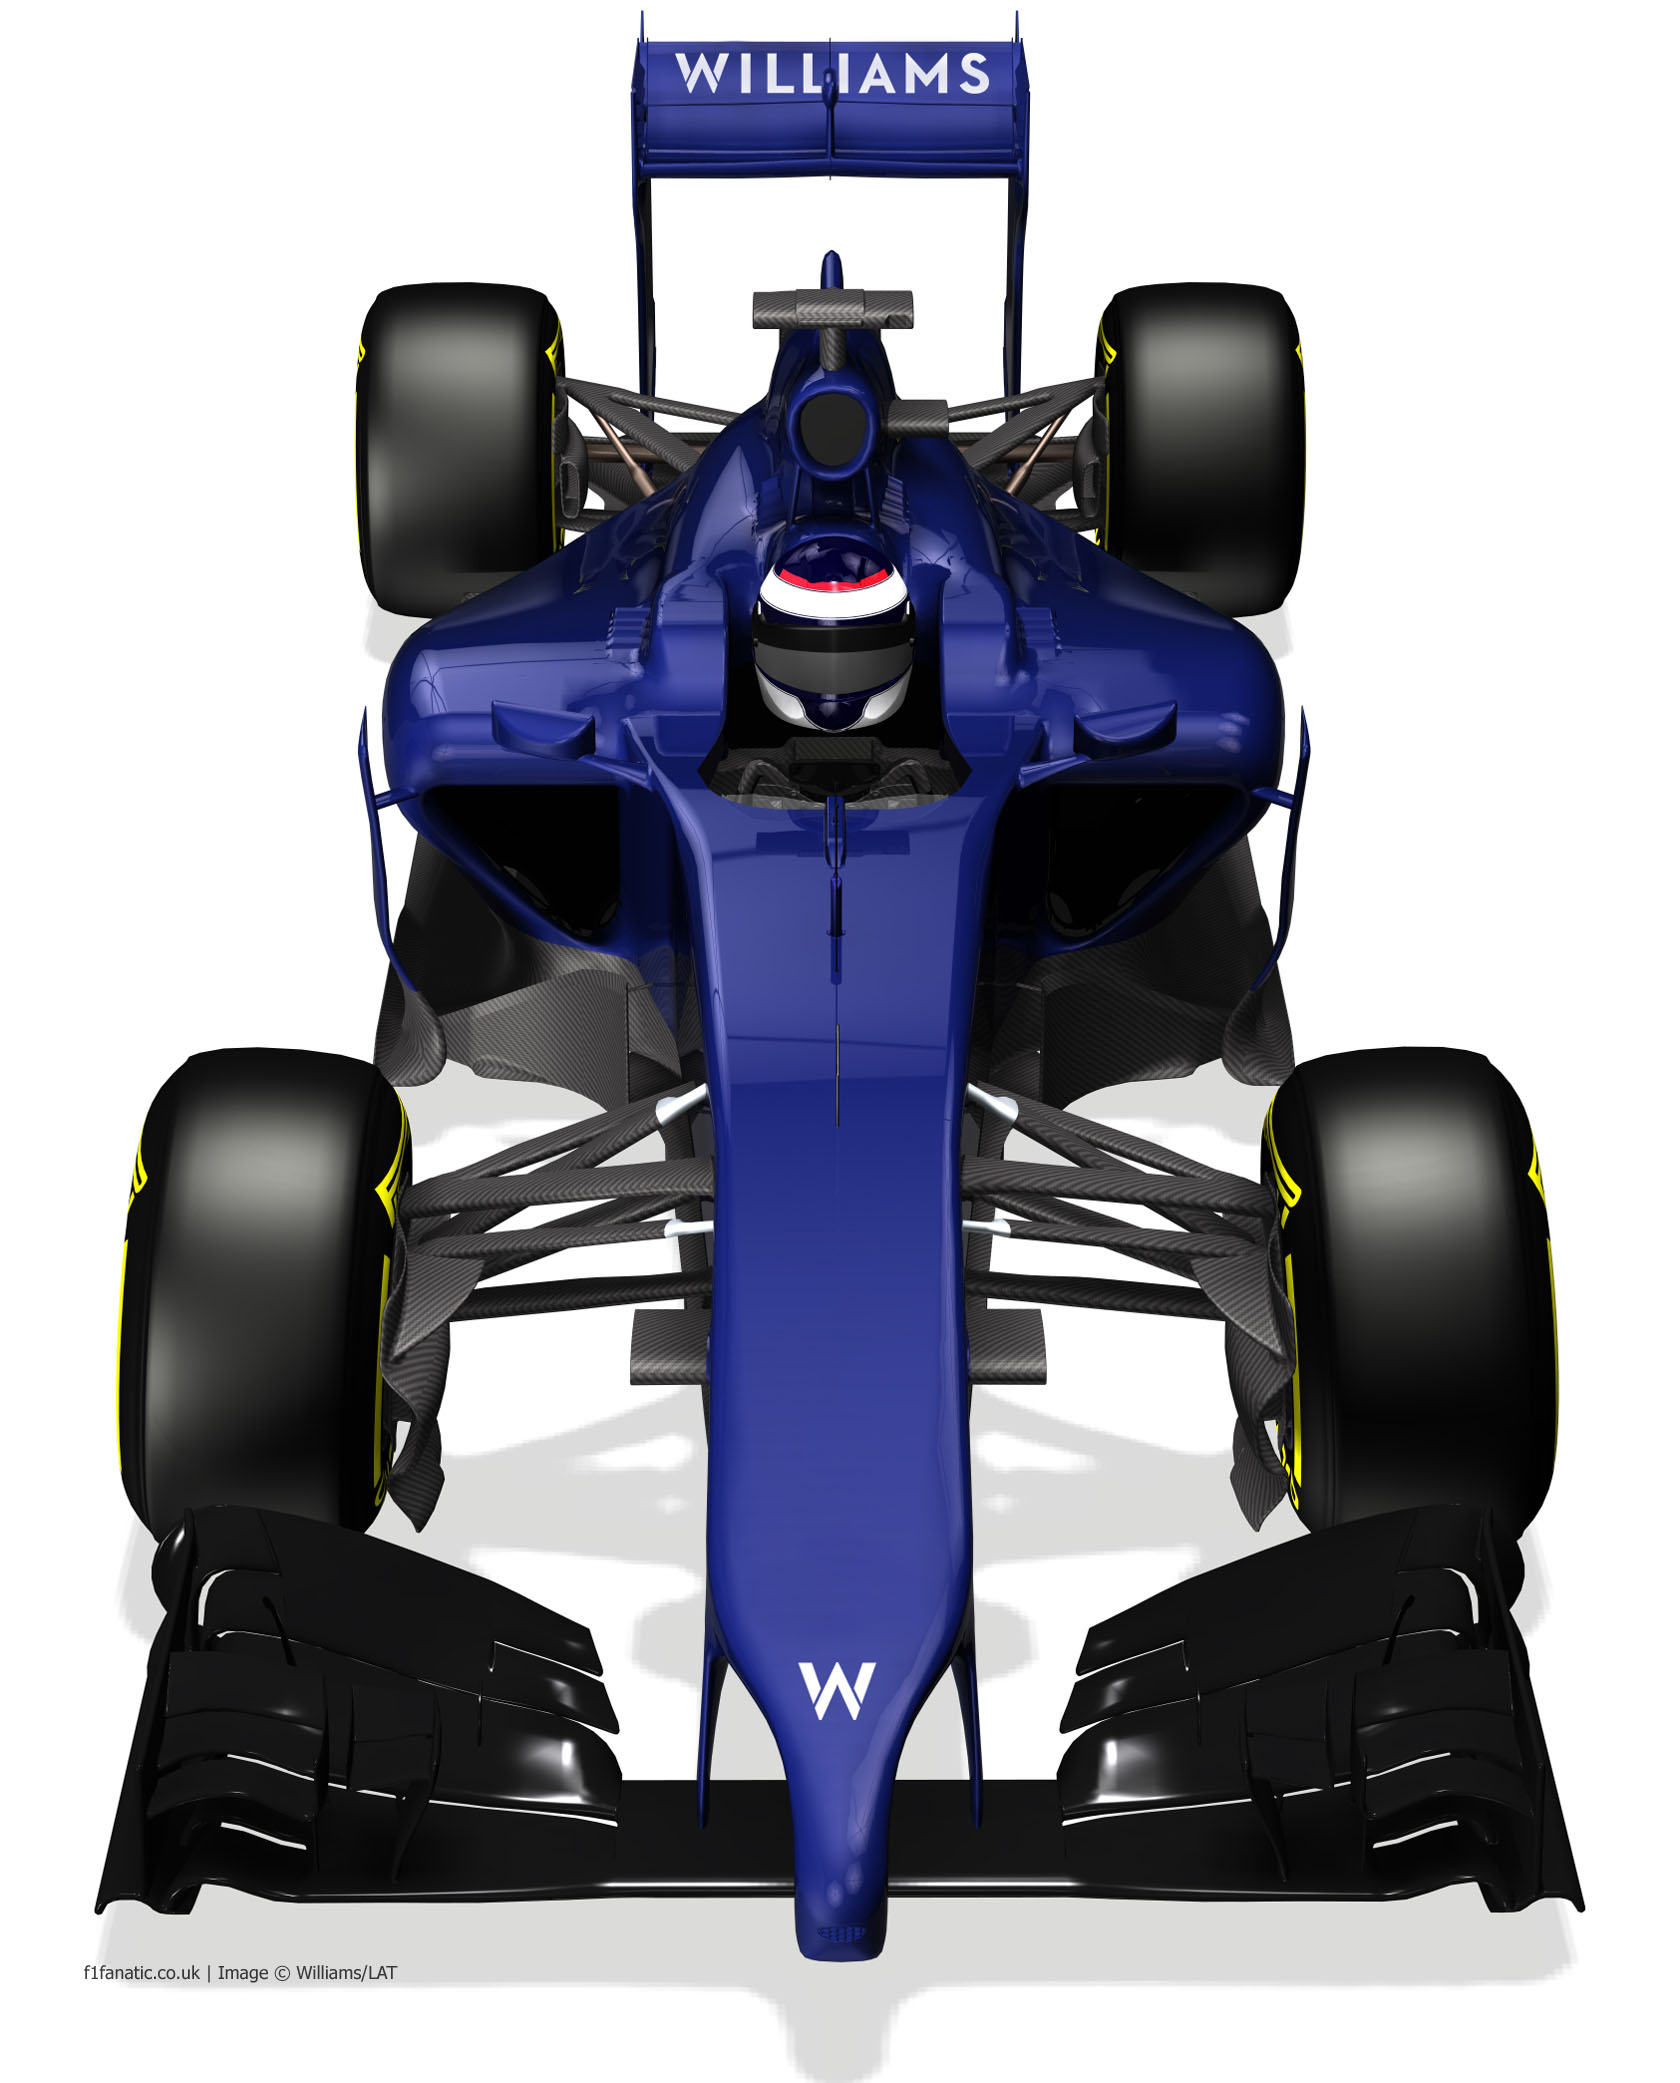 williams-fw36-2014-fh-1.jpg